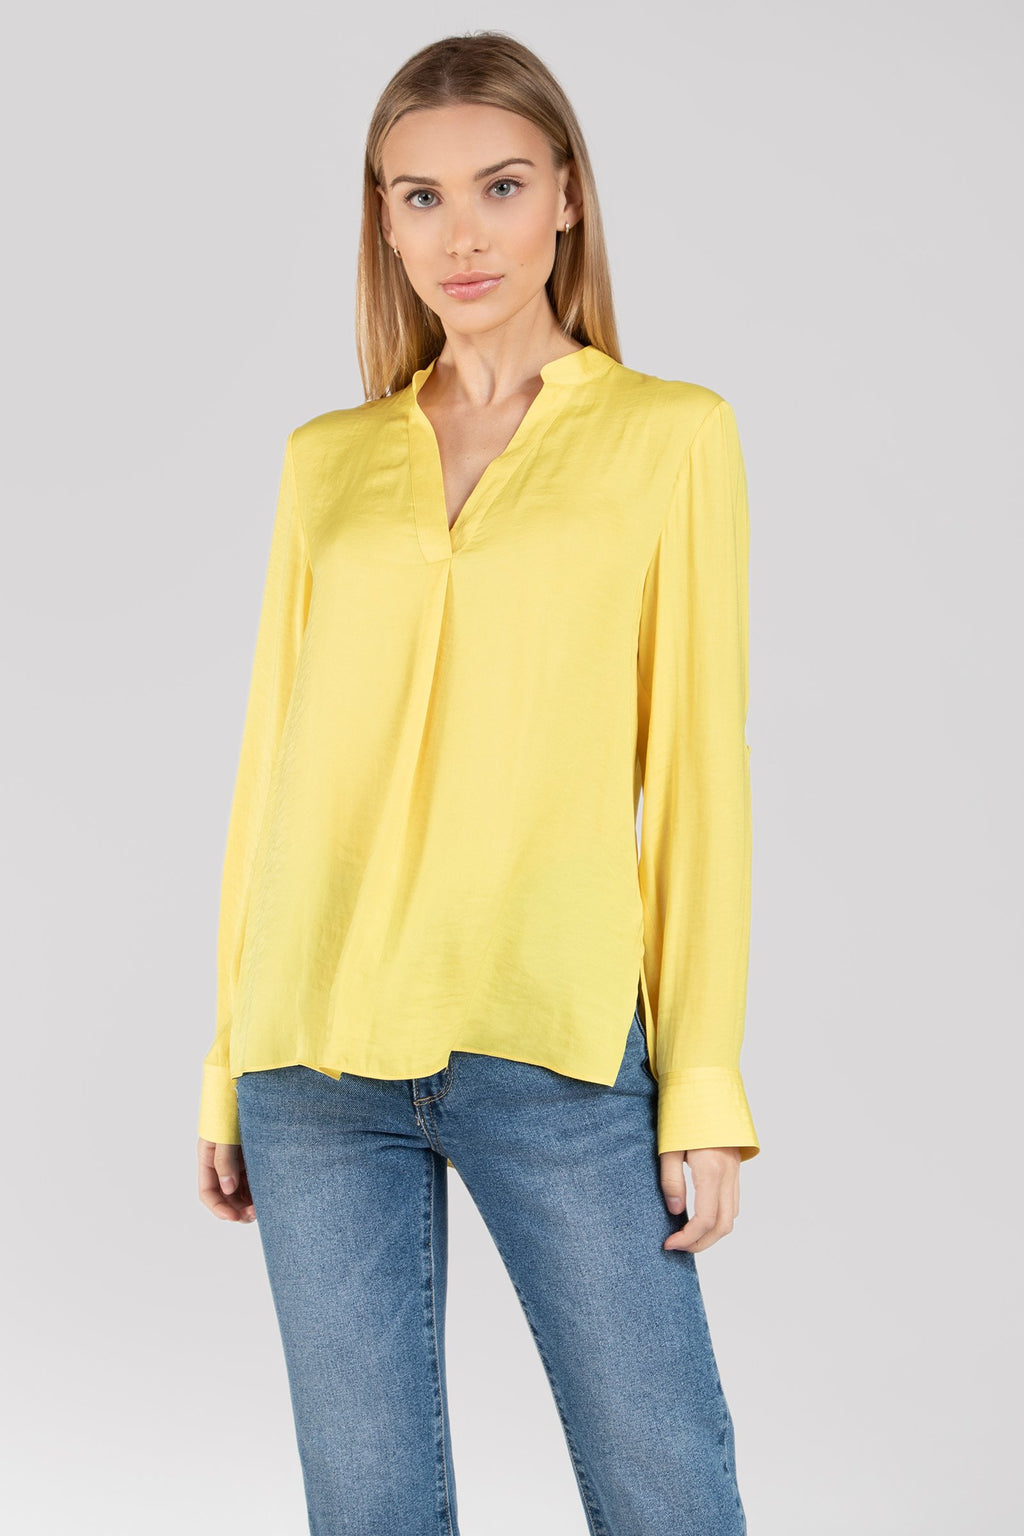 Short Collared Long Sleeve Blouse in Sunshine Yellow